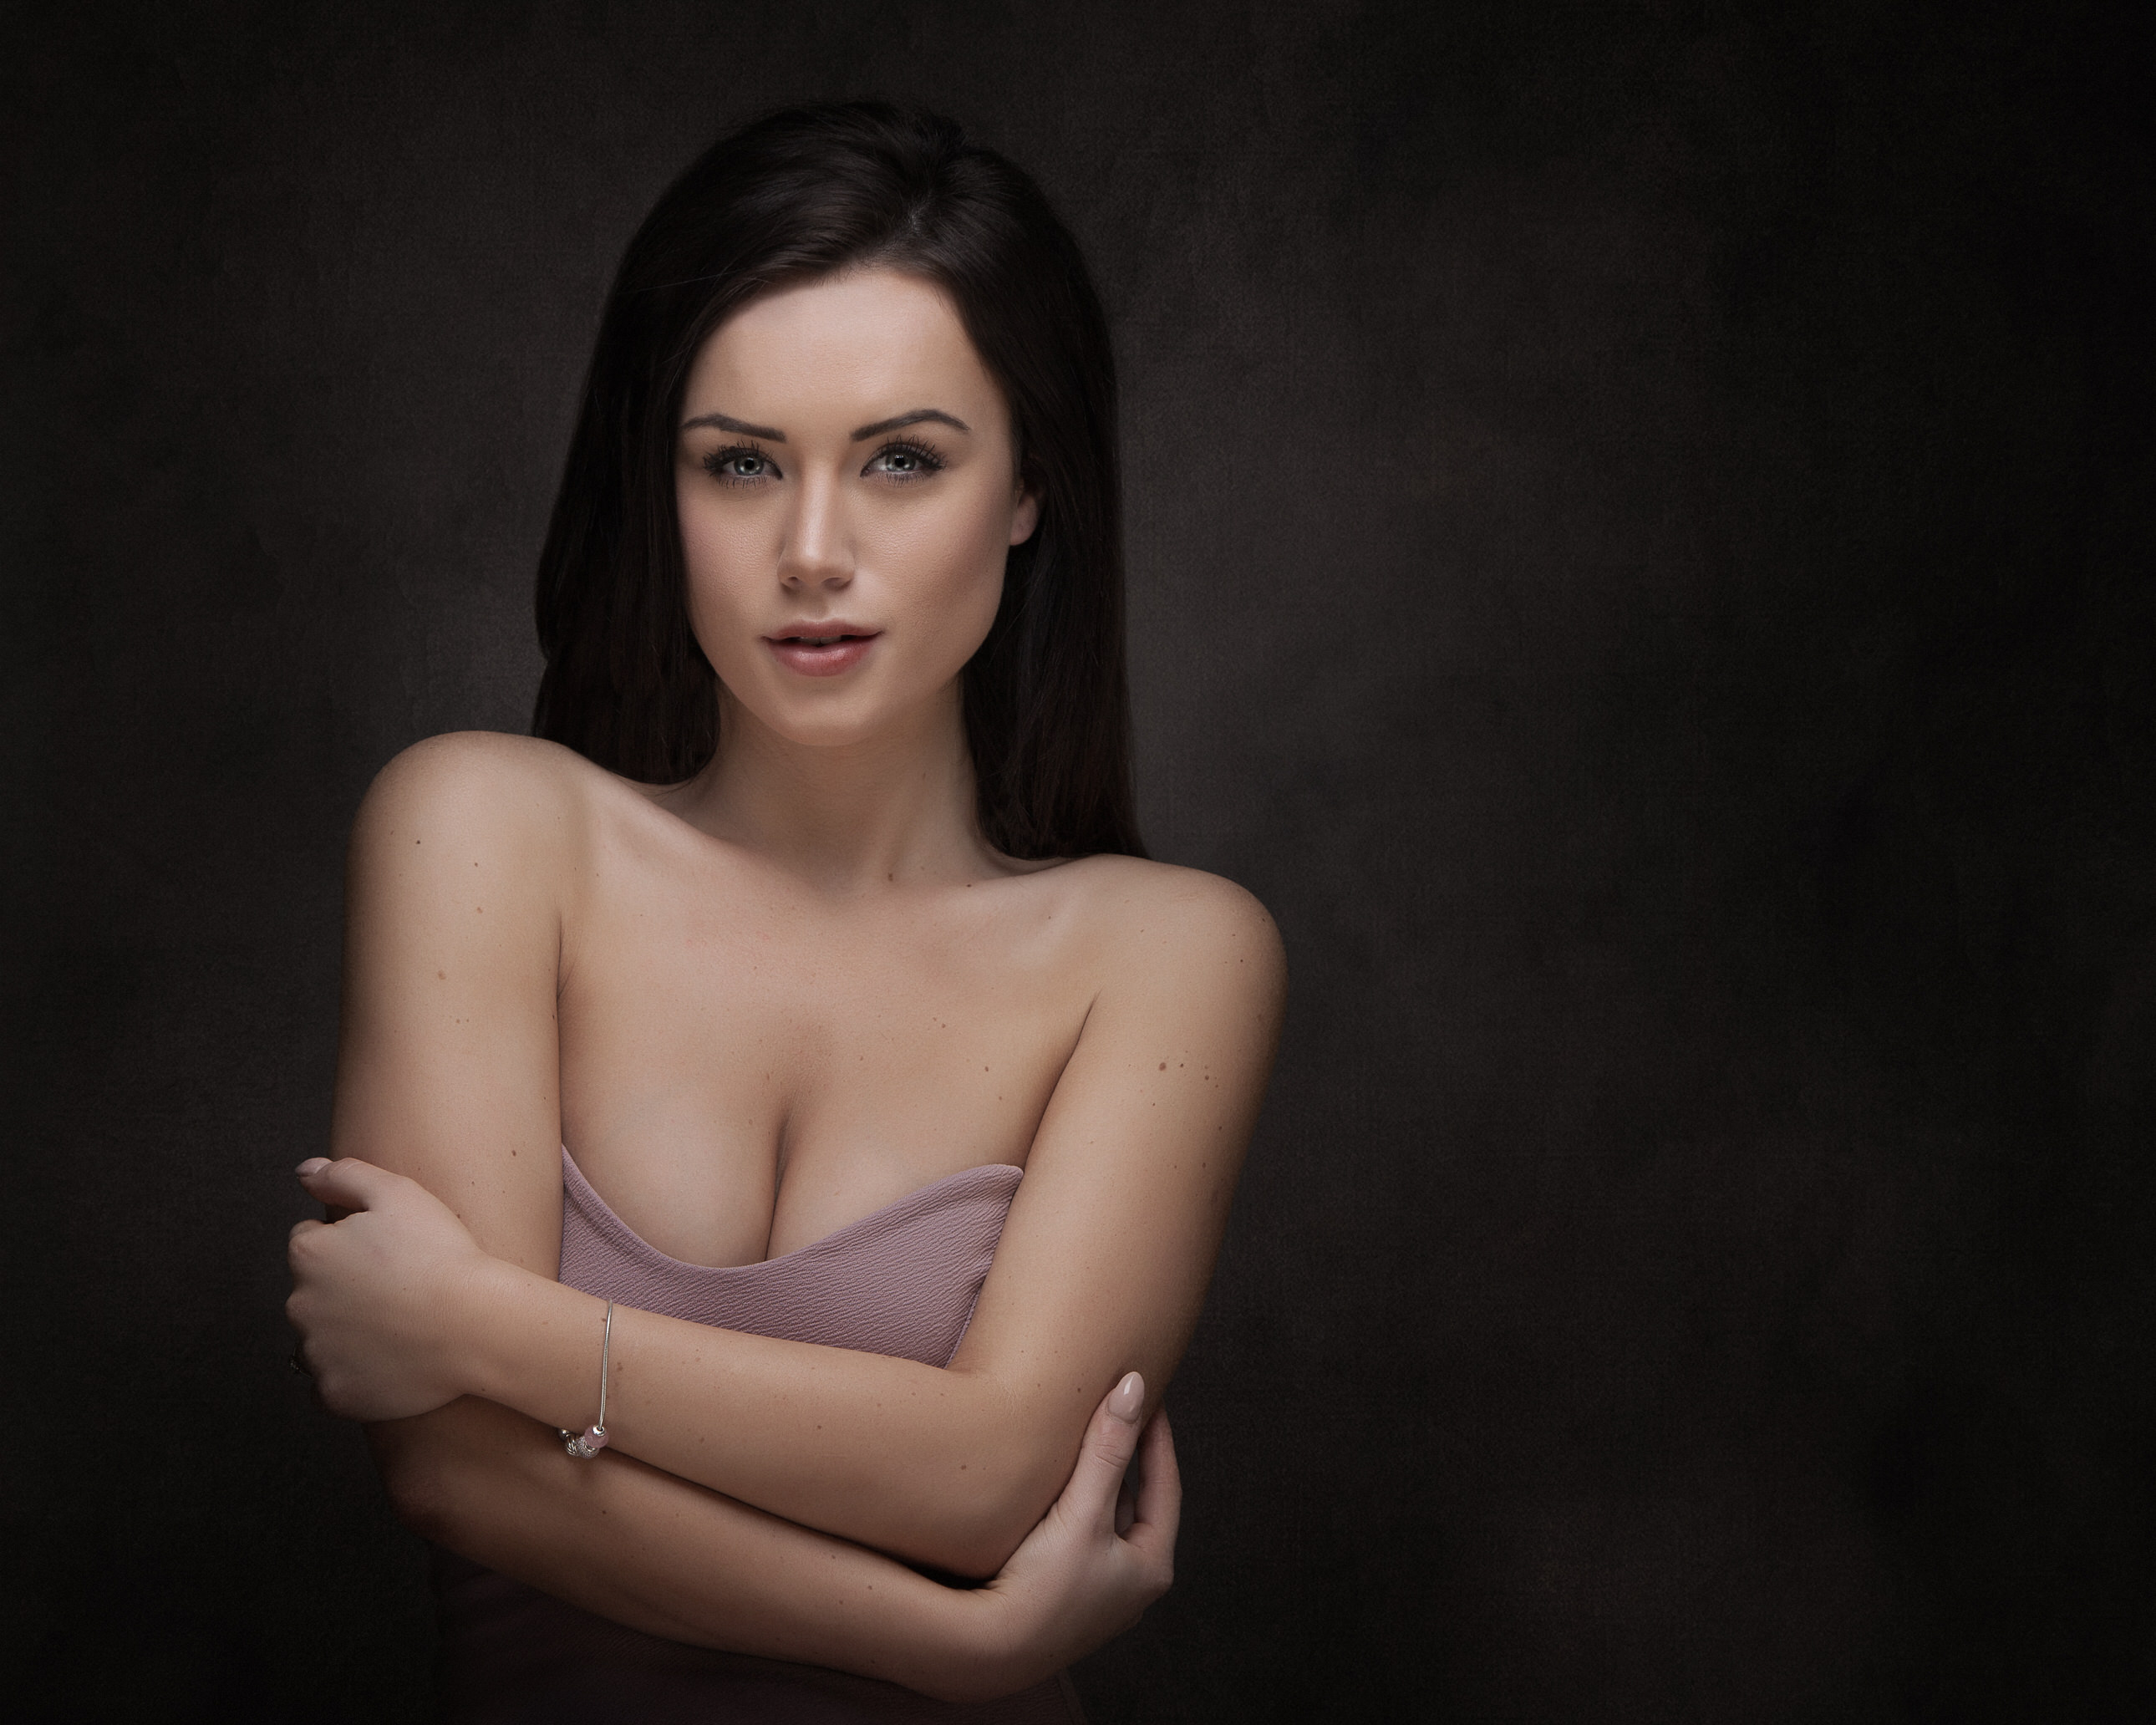 Woman headshot sexy and successful by Portrait photographer Preston